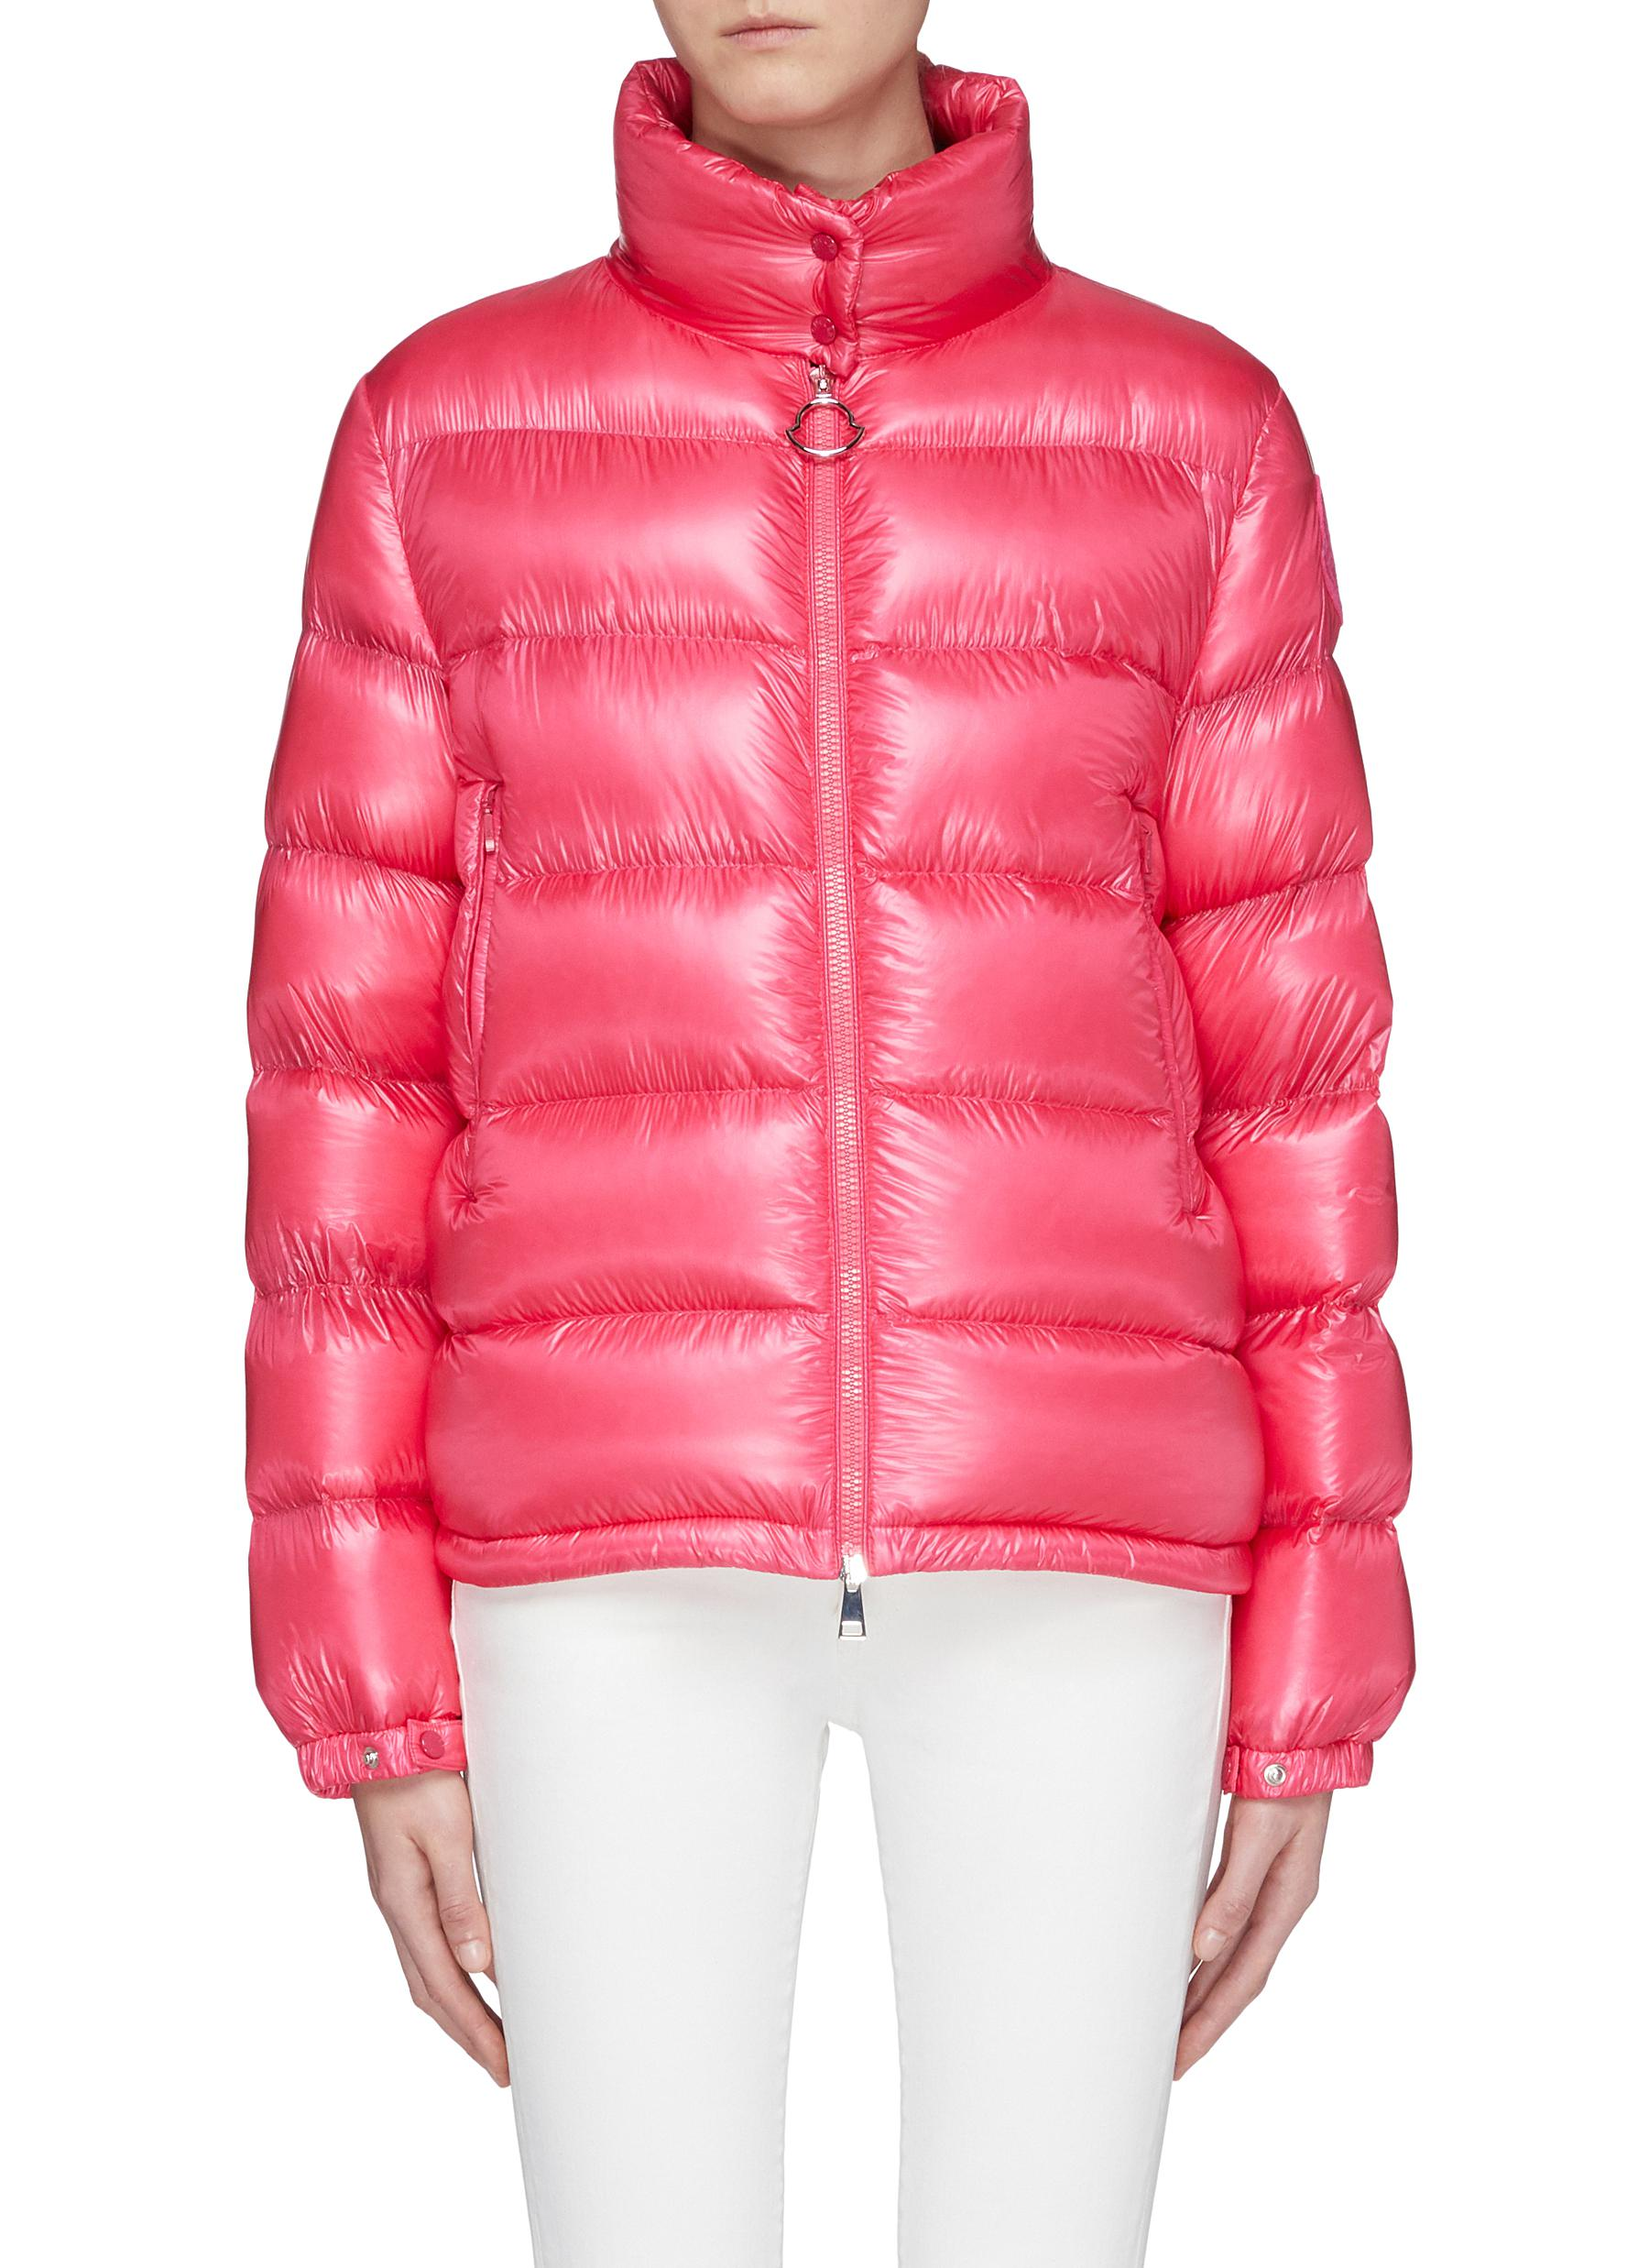 Copenhague down padded puffer jacket by Moncler